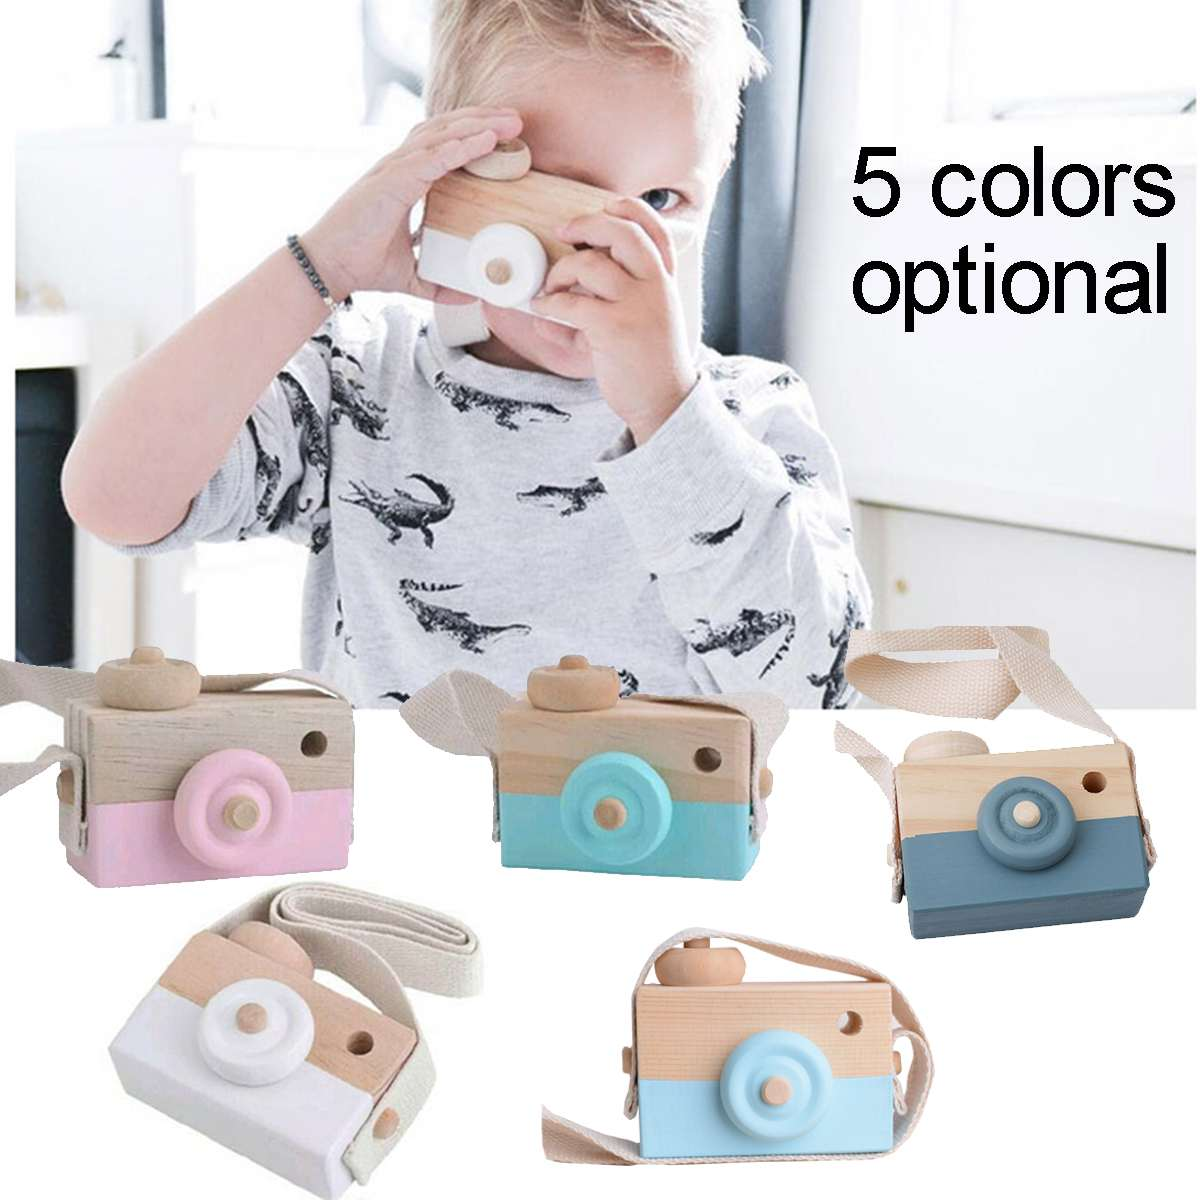 Nordic Style Children's Wooden Camera Ornaments Mini Portable Wearable Educational Toys Photography Props Cute Home Ornaments